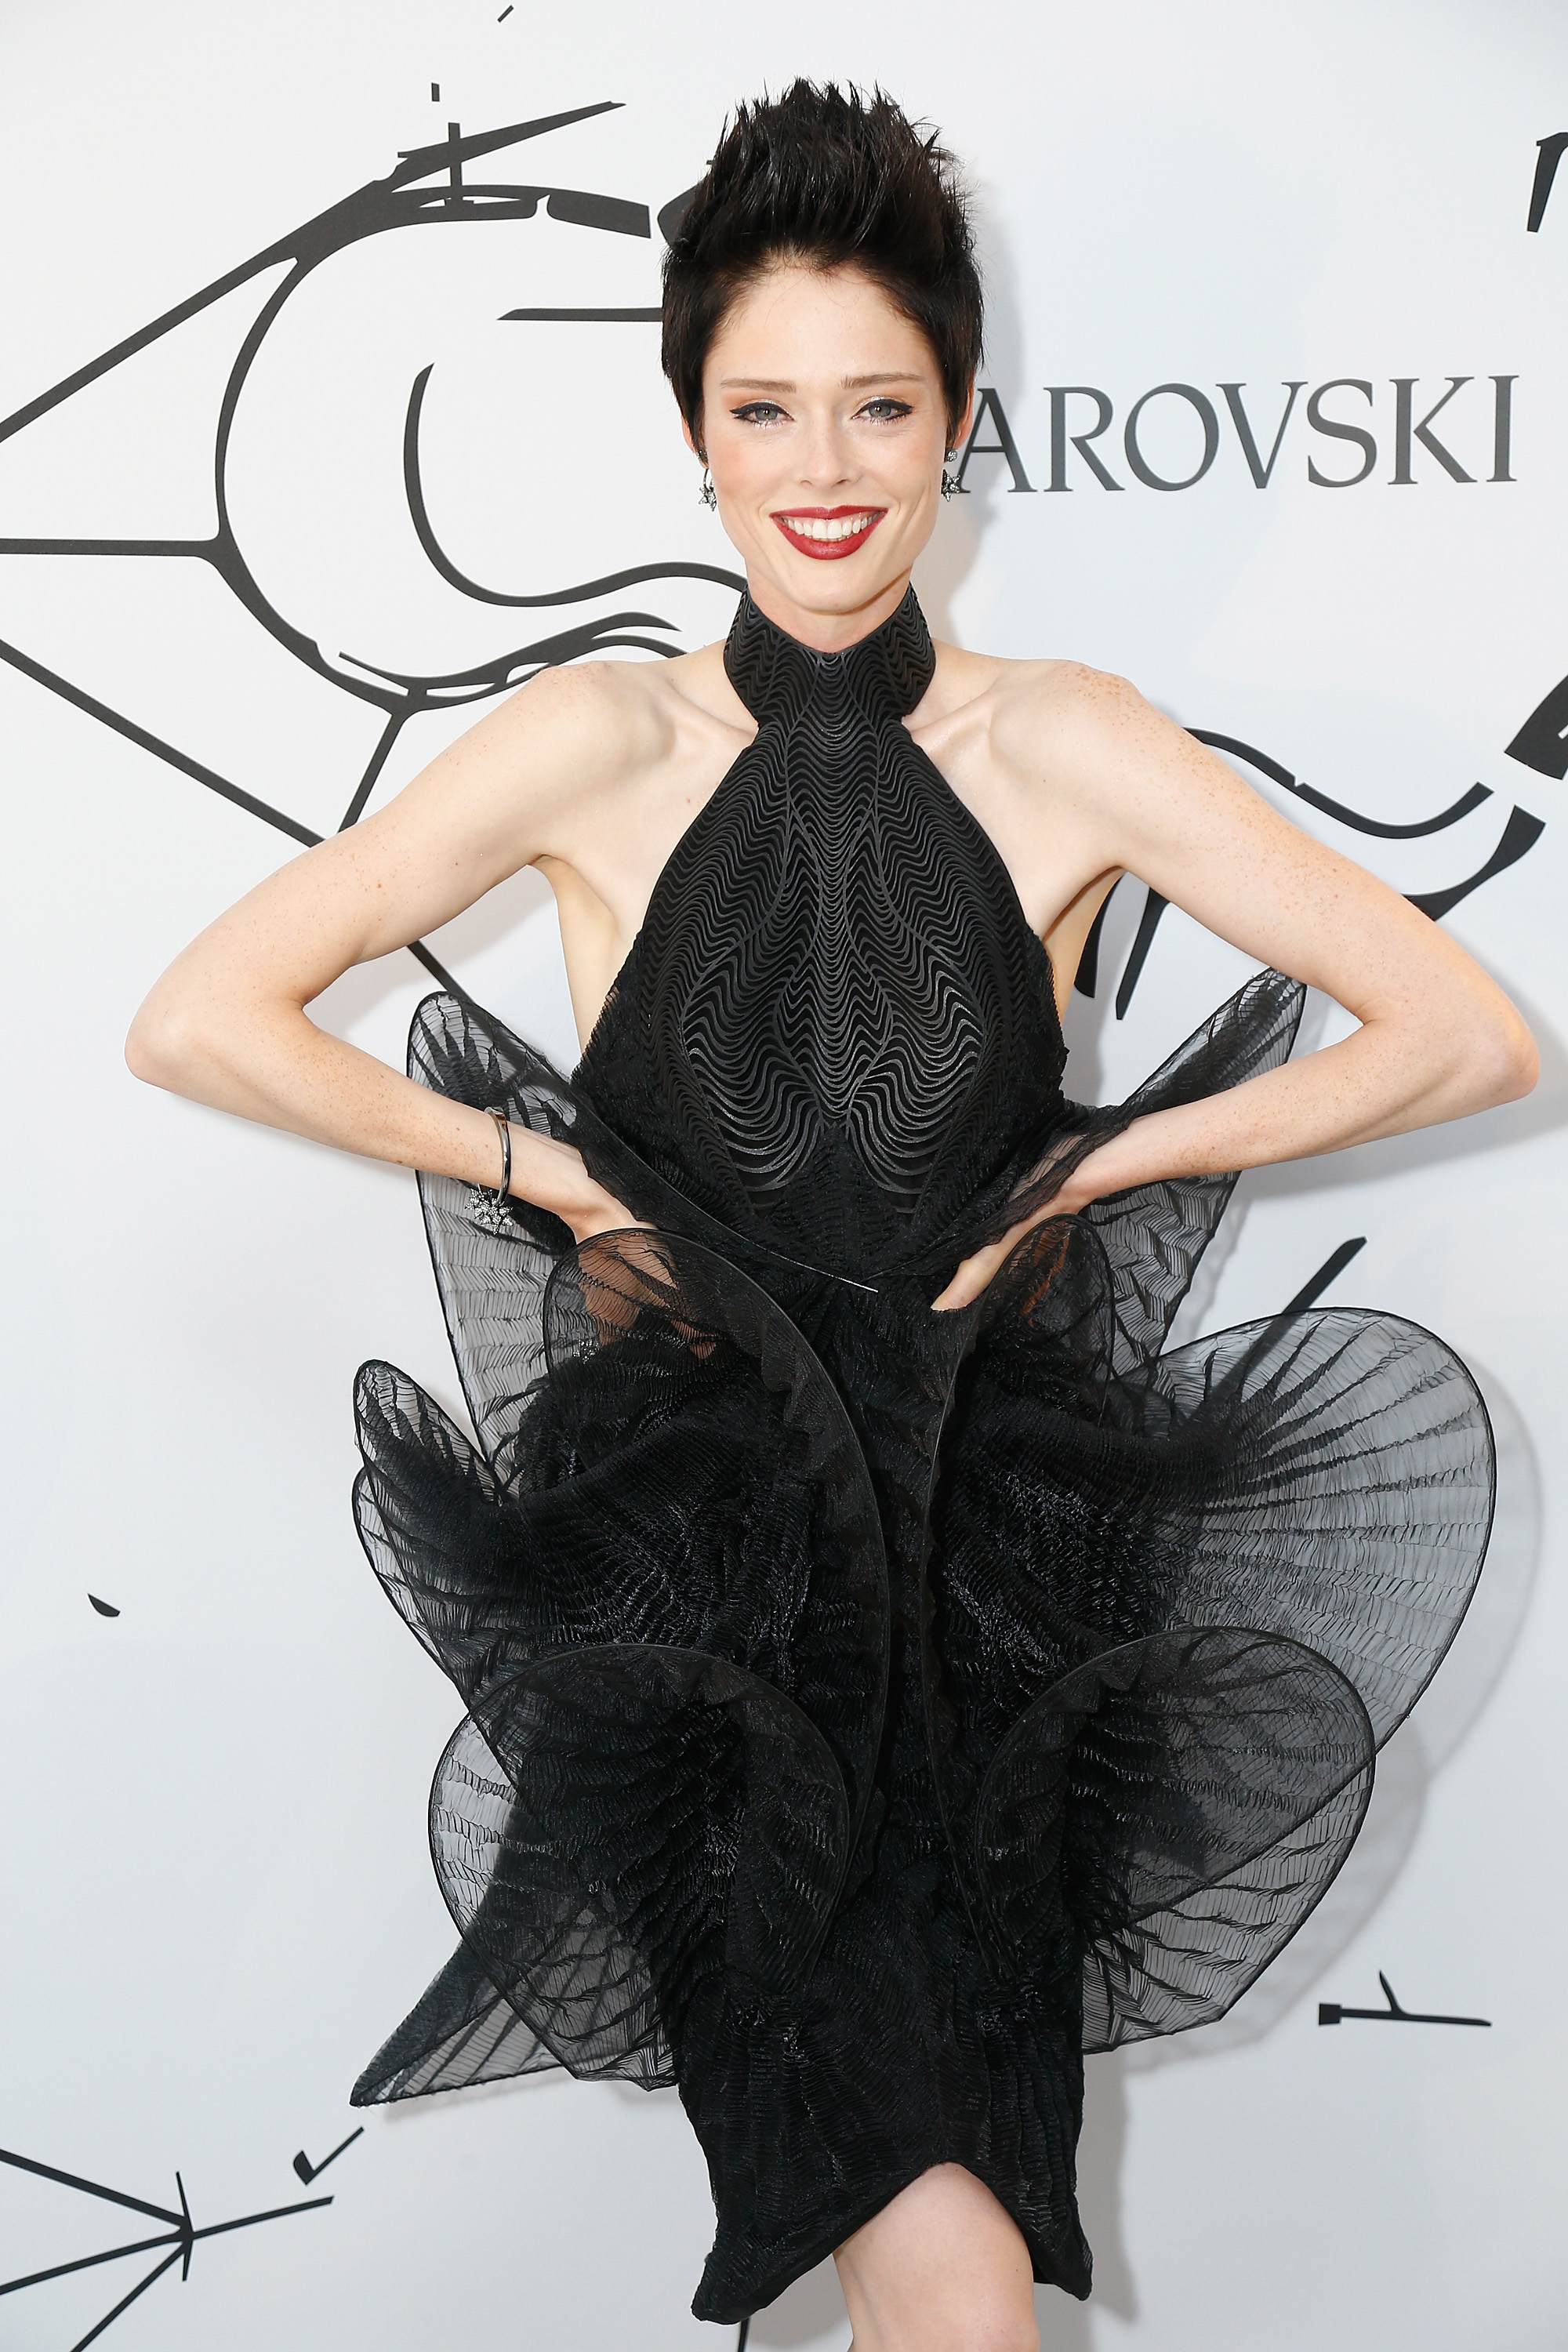 PARIS, FRANCE - JULY 05:  Coco Rocha attends the Iris Van Herpen X Swarovski Cocktail Haute Couture Fall/Winter 2017-2018 show as part of Haute Couture Paris Fashion Week on July 3, 2017 in Paris, France.  (Photo by Julien Hekimian/Getty Images) *** Local Caption *** Coco Rocha